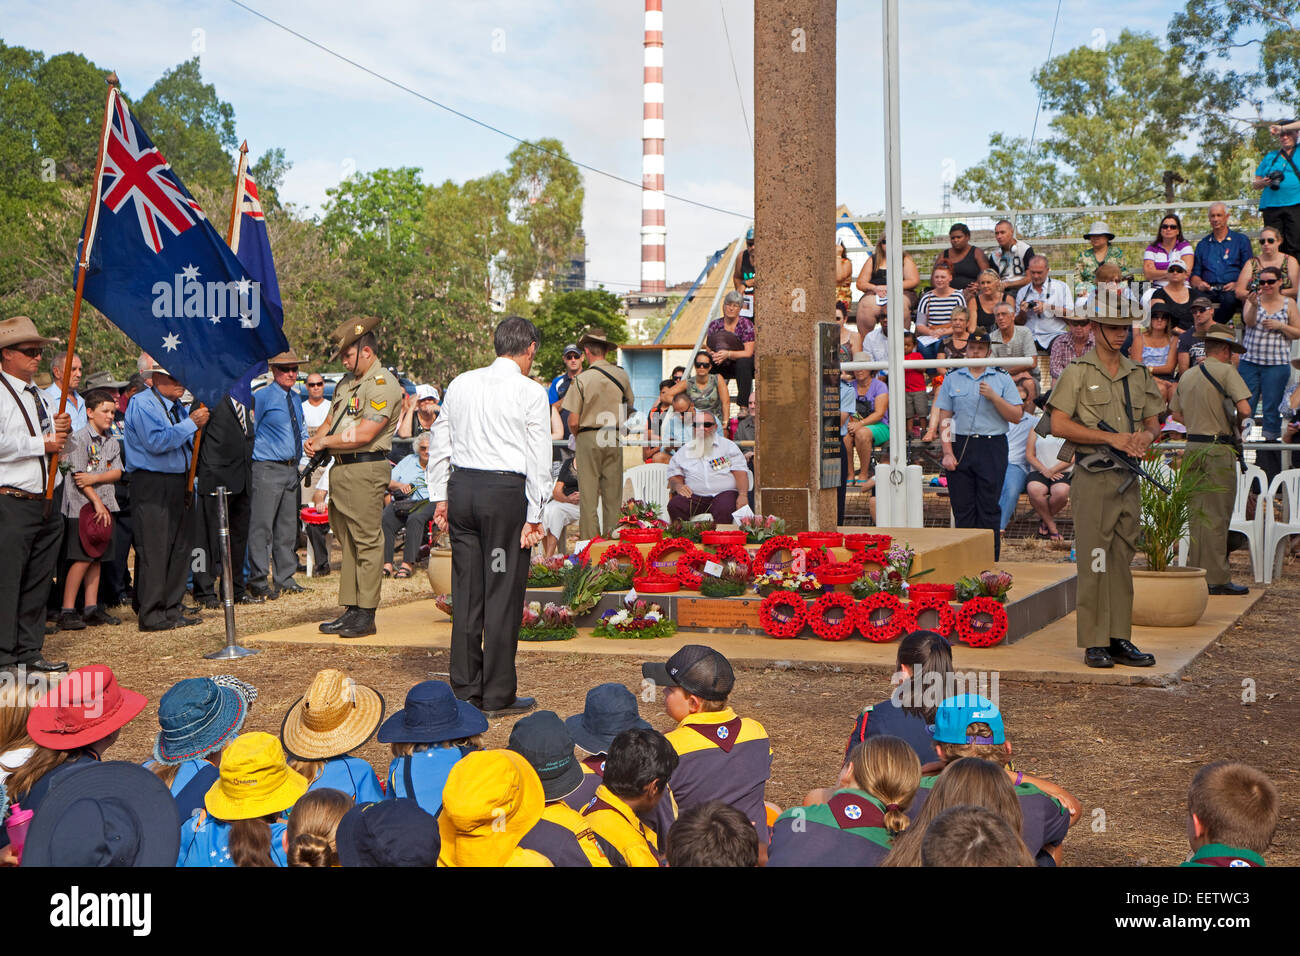 Remembrance service on ANZAC Day at George McCoy park in Mount Isa, Gulf Country region of Queensland, Australia - Stock Image